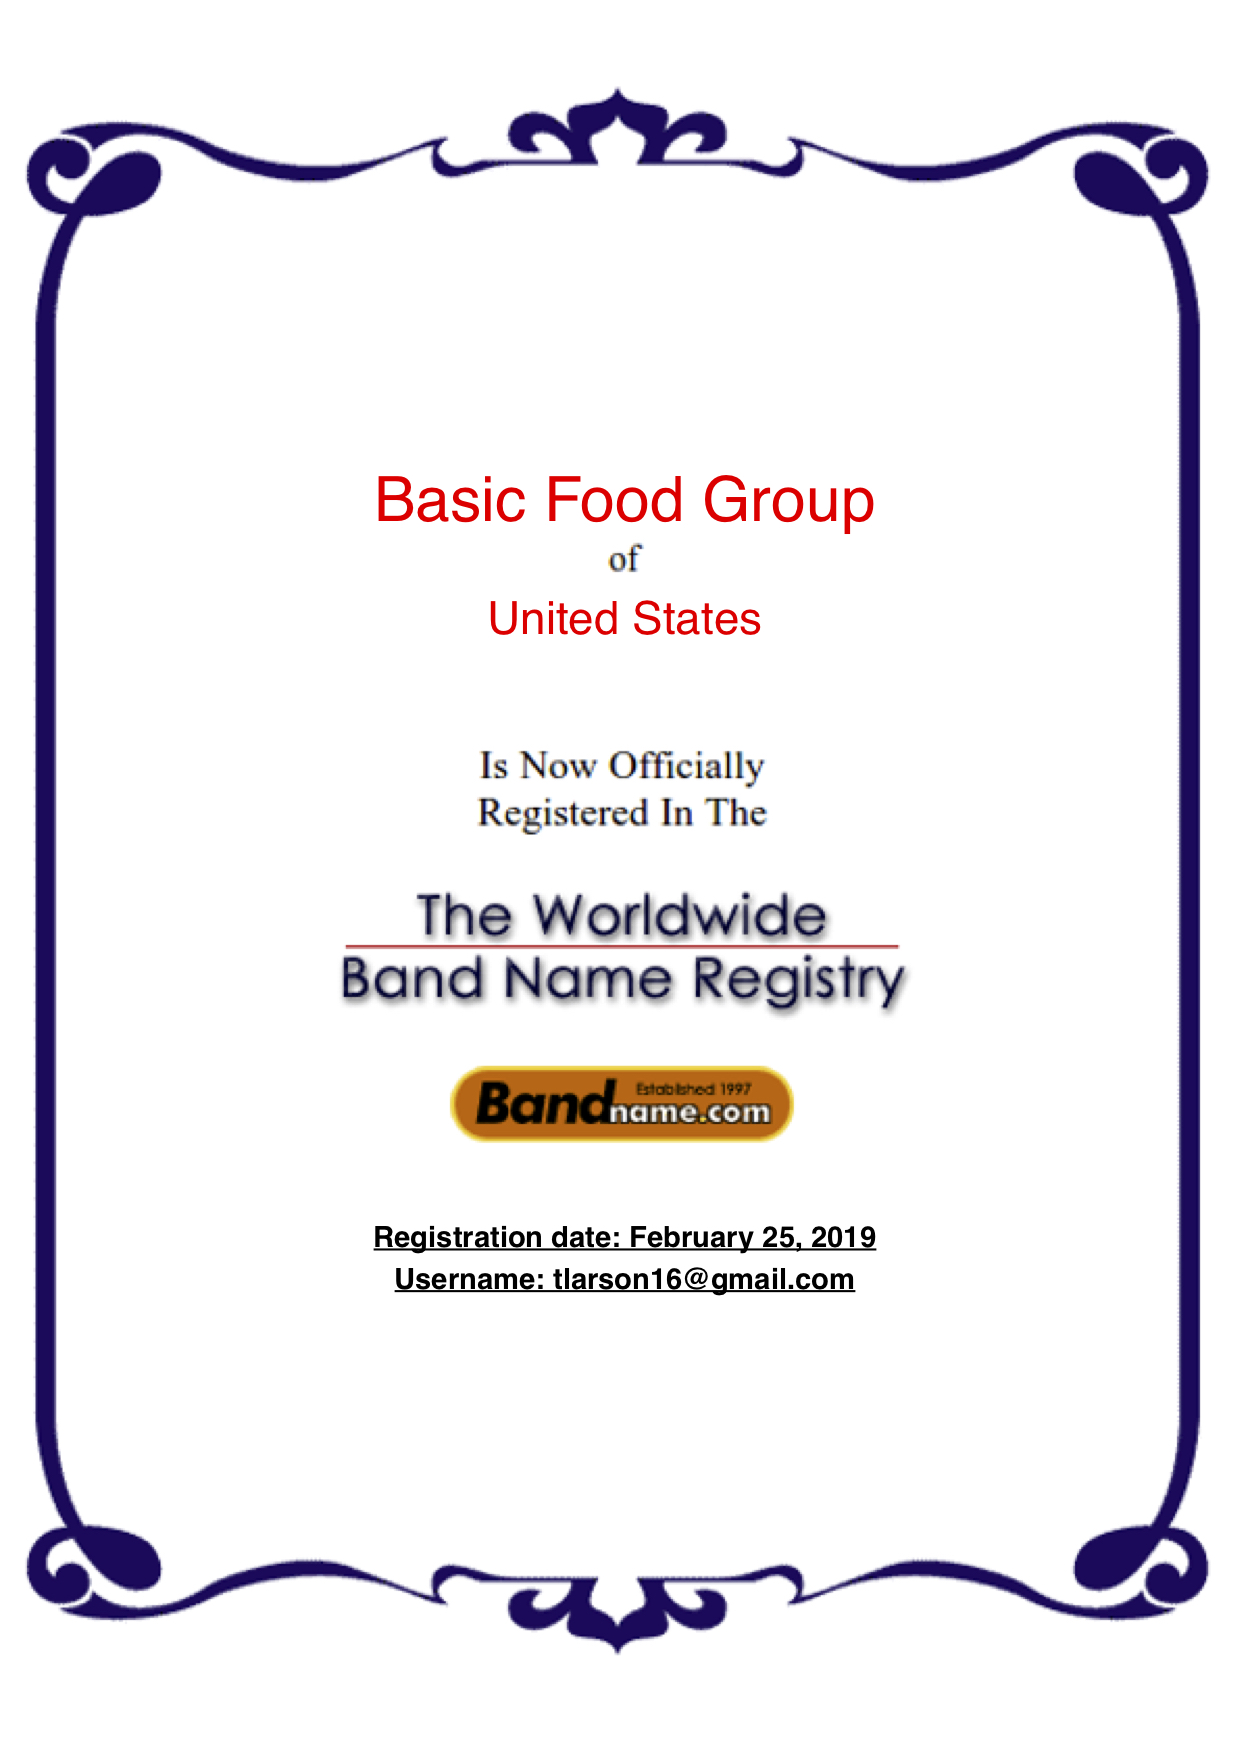 BasicFoodGroup Worldwide Band Name Registry.jpg